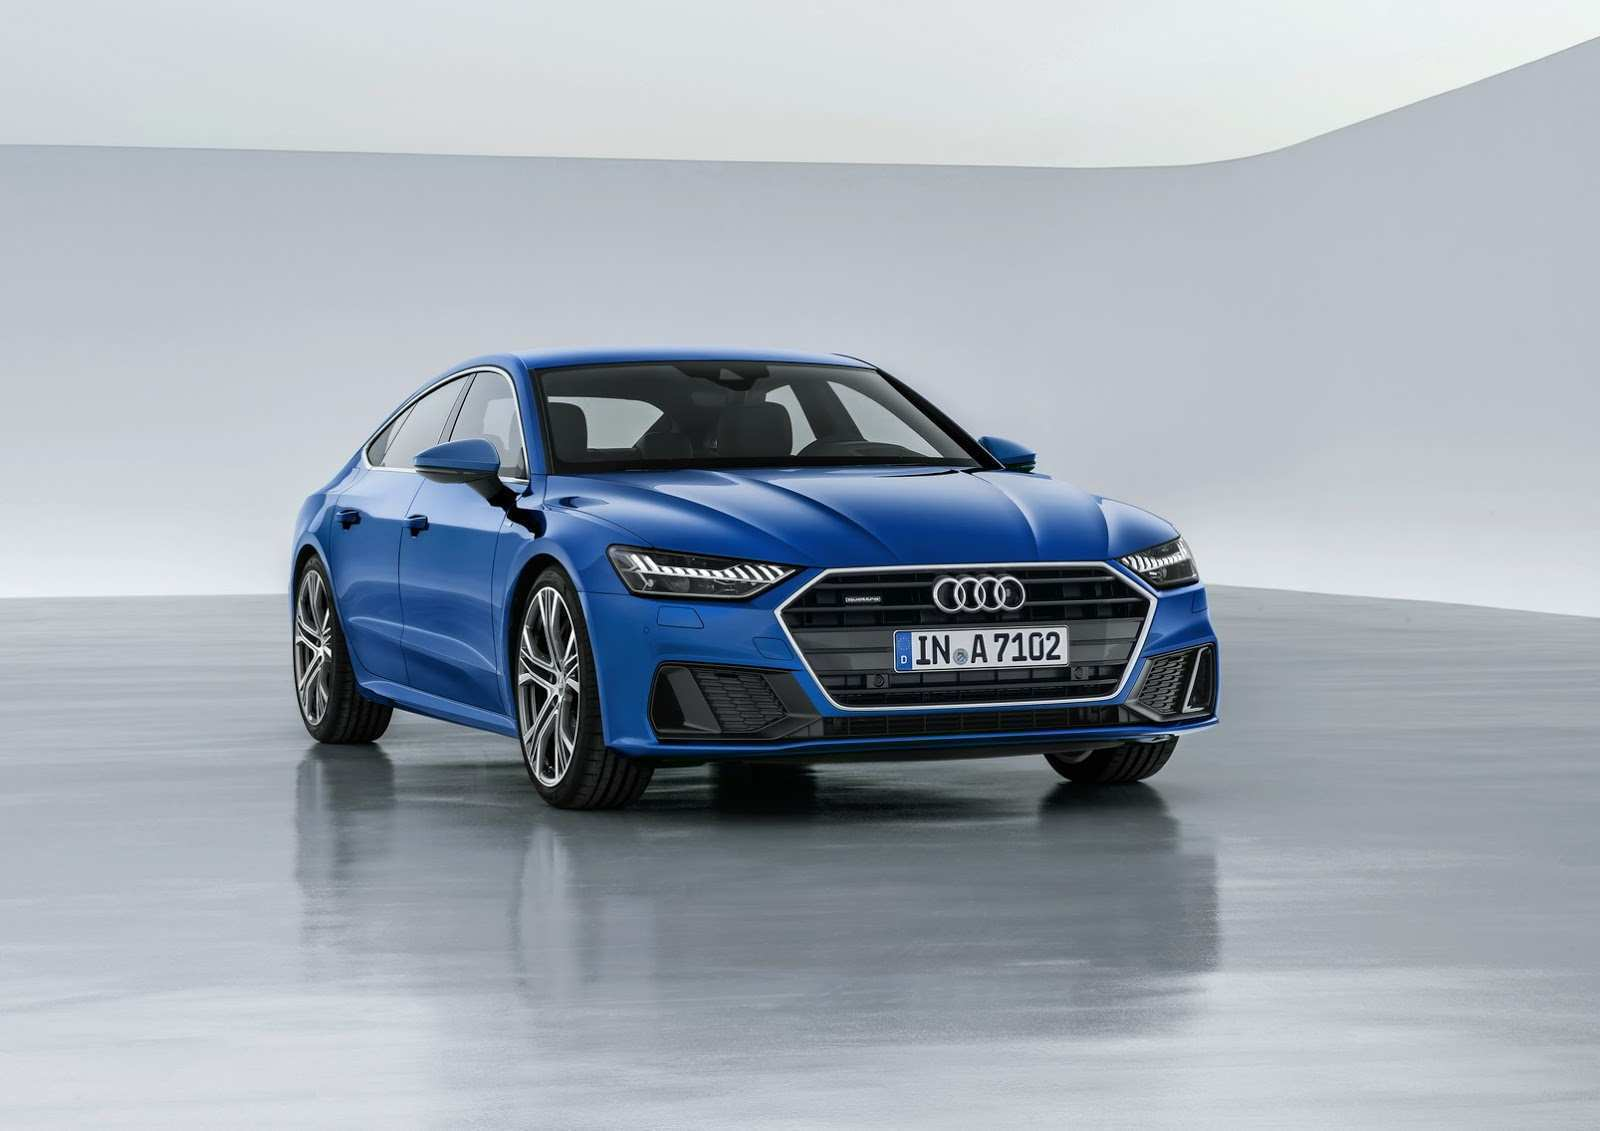 28 New 2019 Audi A7 Debut Engine by 2019 Audi A7 Debut